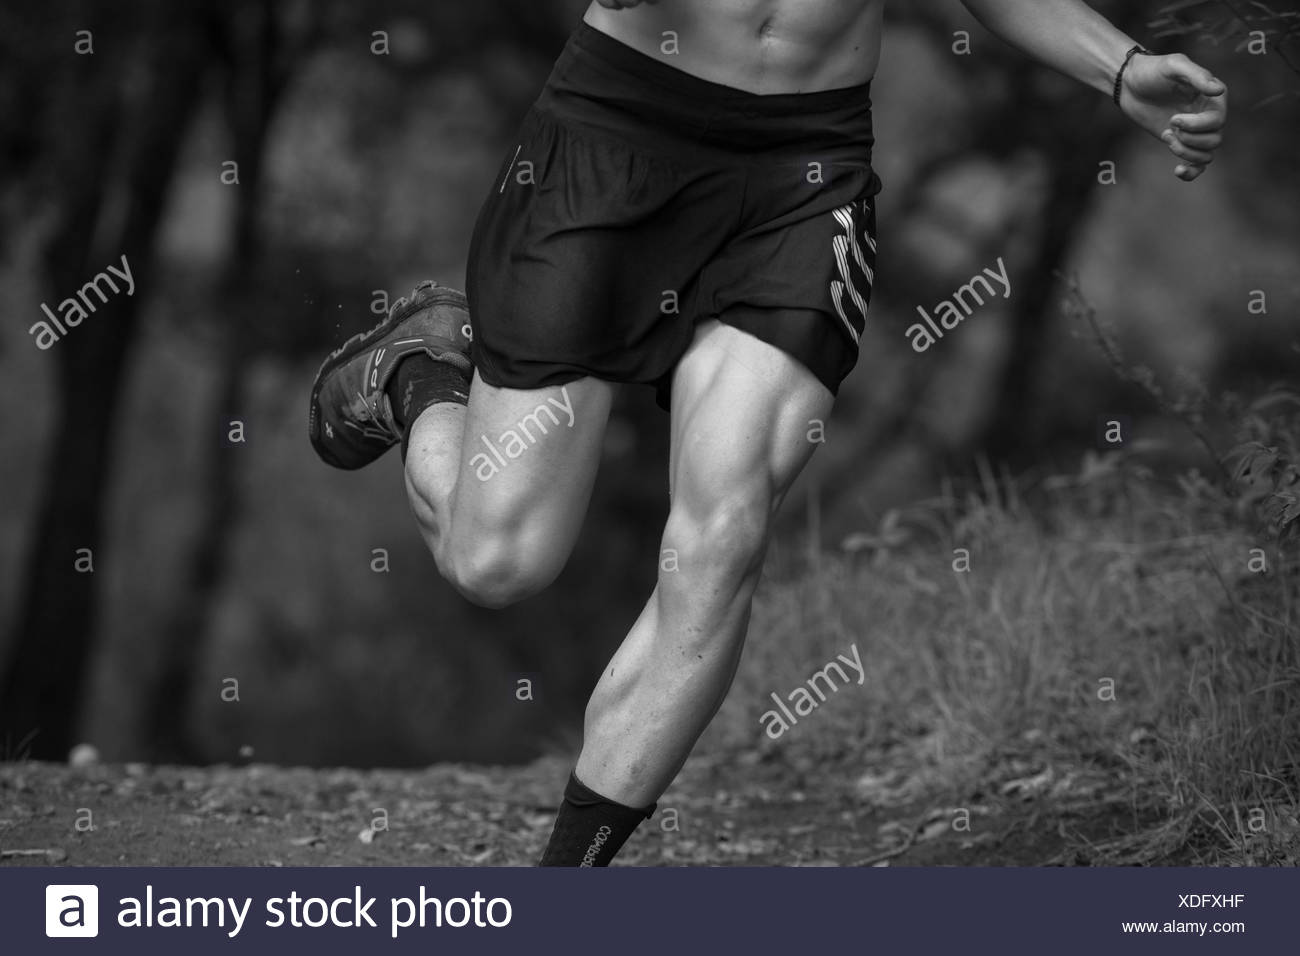 Low section of muscular man trail running in Rancho Santa Elena, Hidalgo, Mexico - Stock Image